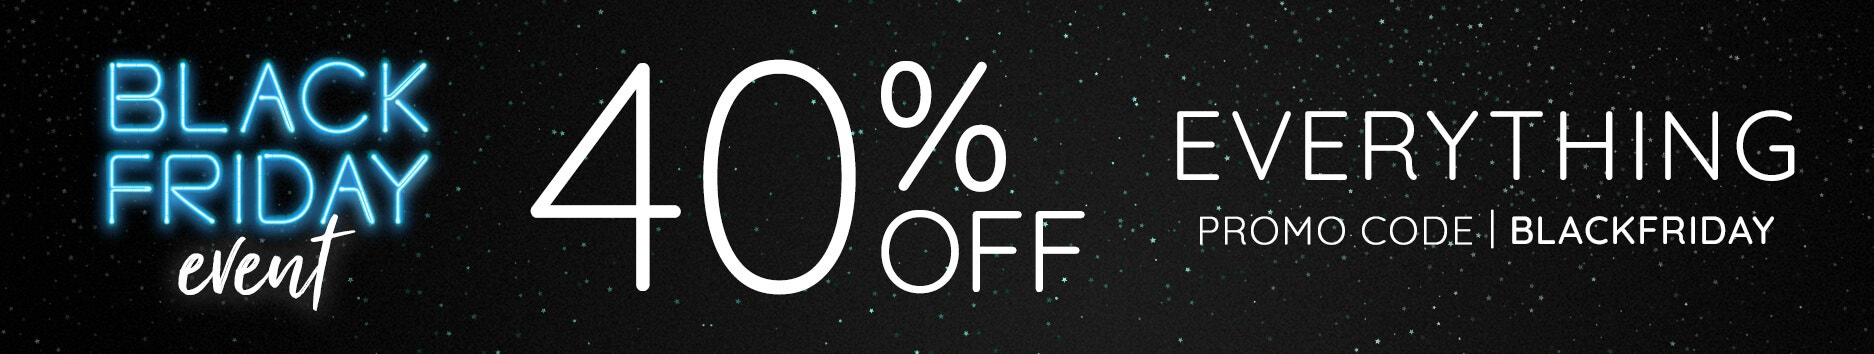 Black Friday Event - 40% Off Everything